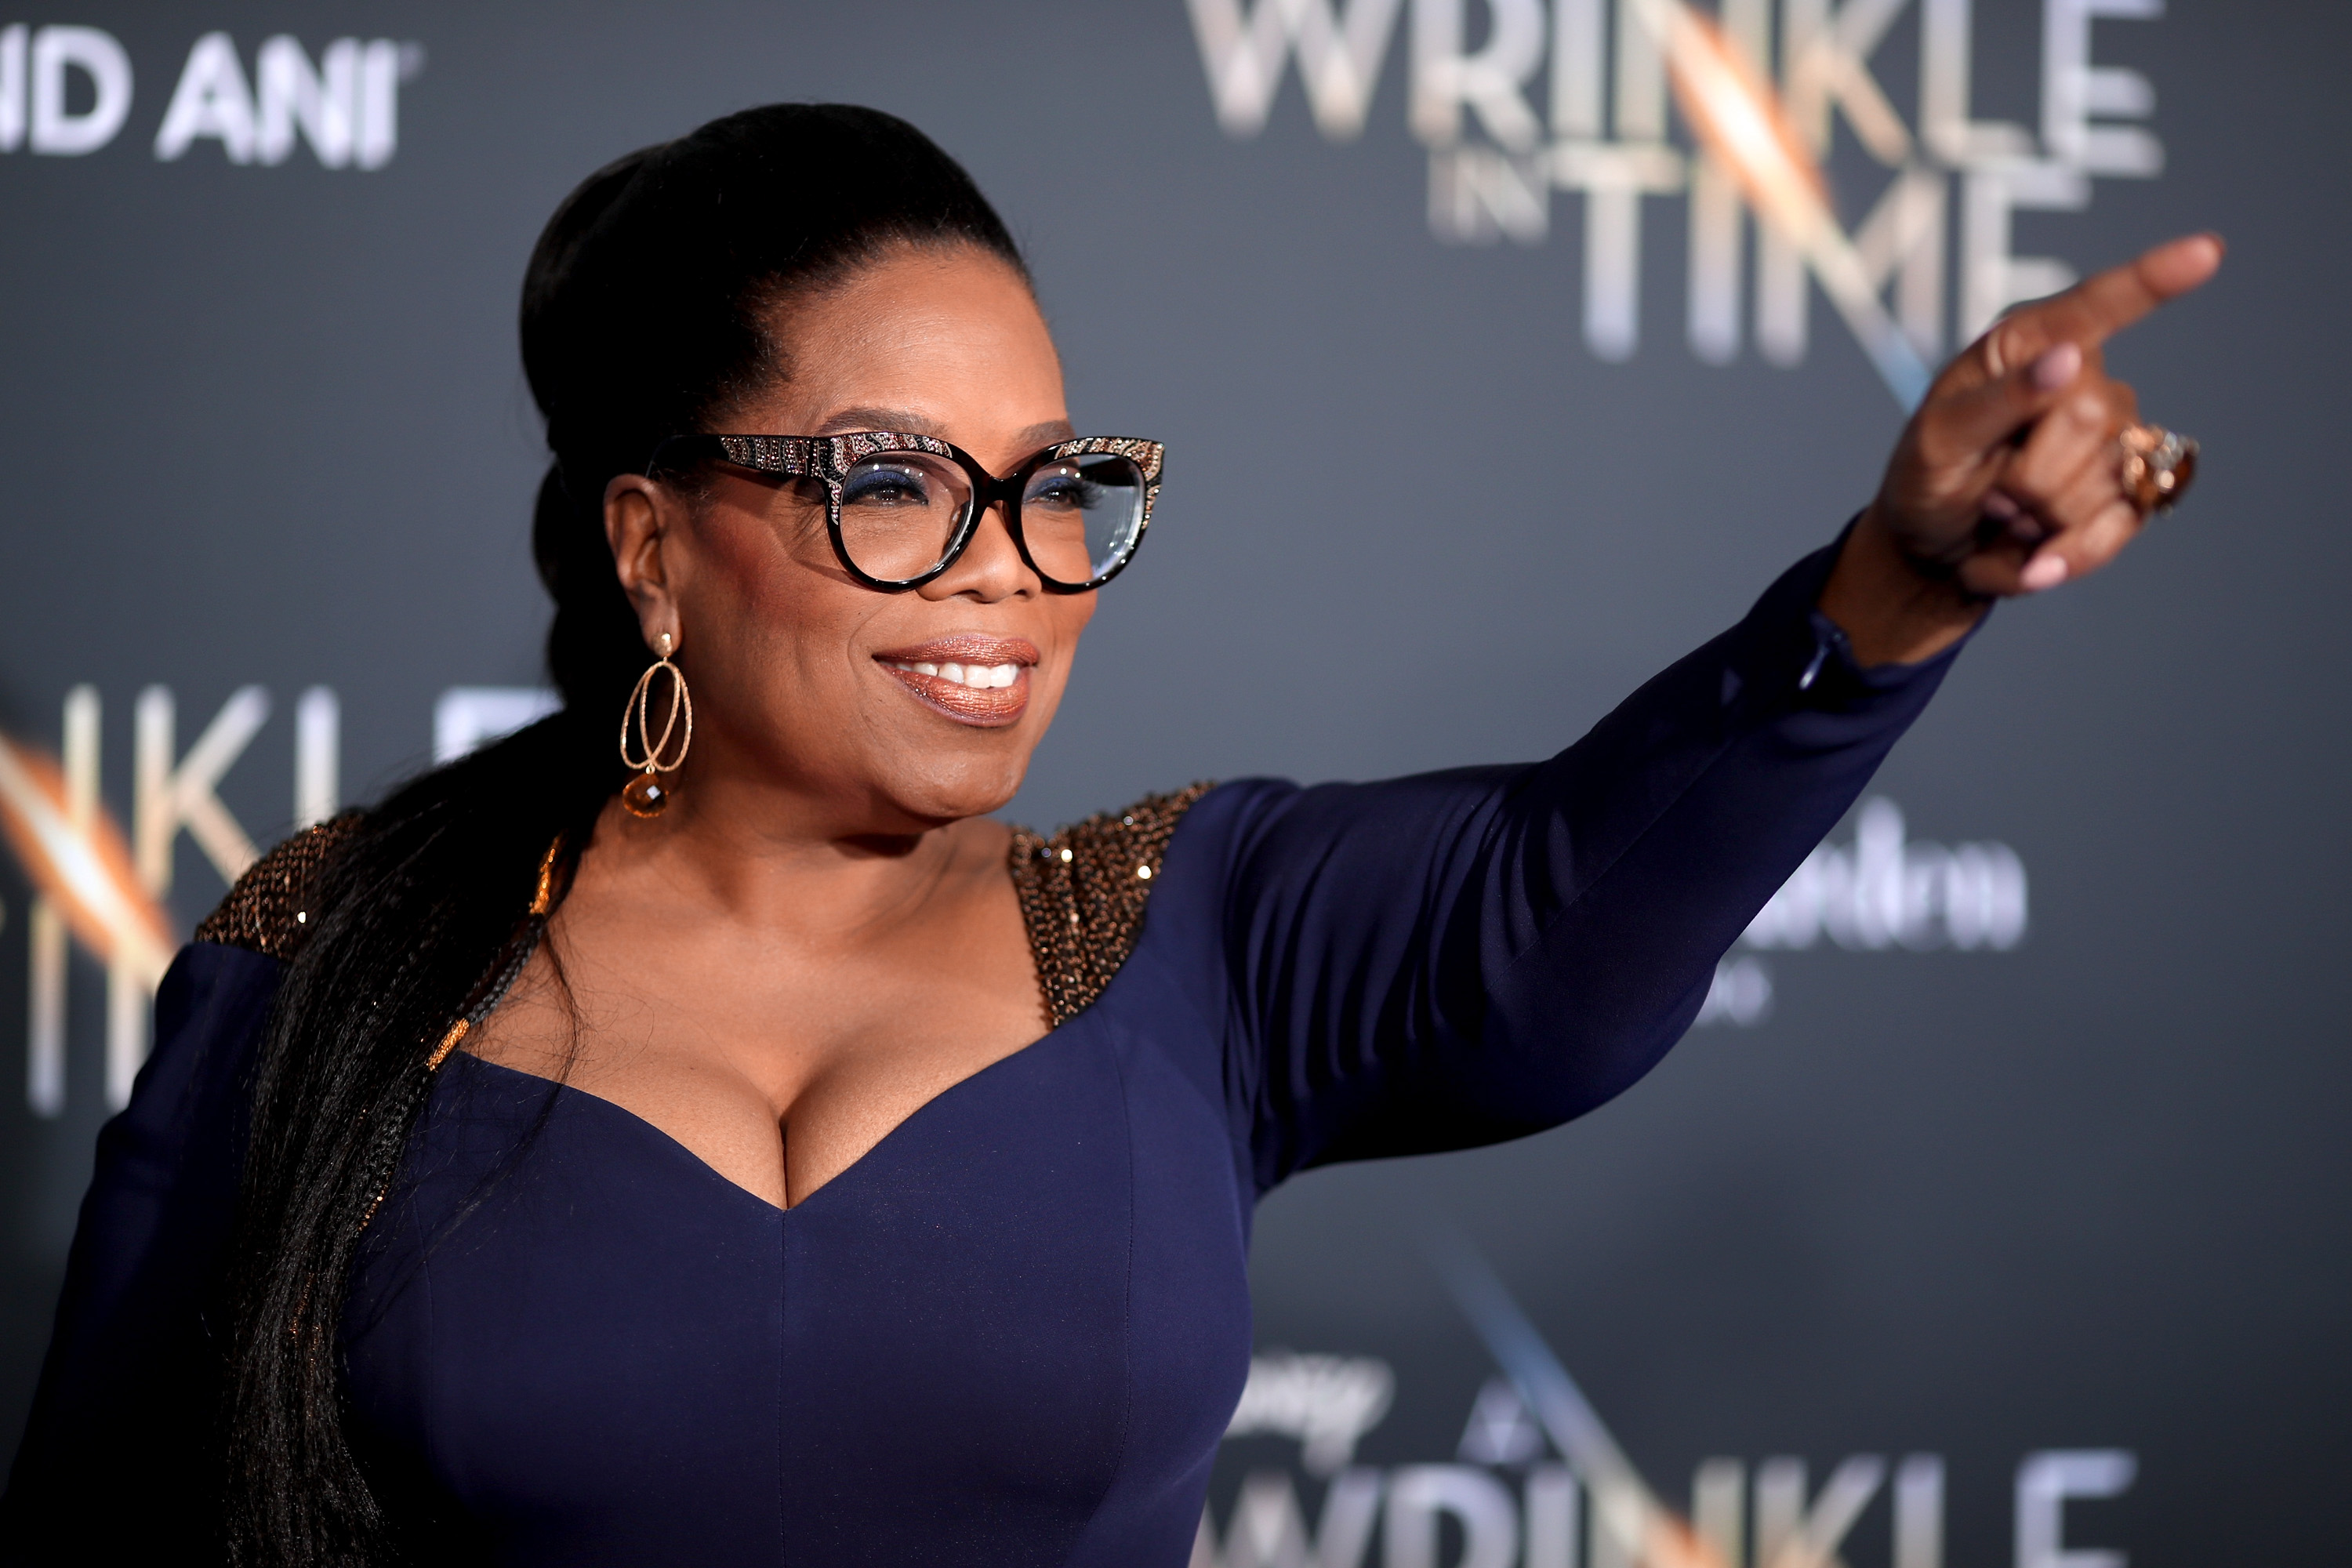 Inspired by Lin-Manuel Miranda's Work, Oprah Donates $2M to Puerto Rico Relief Efforts